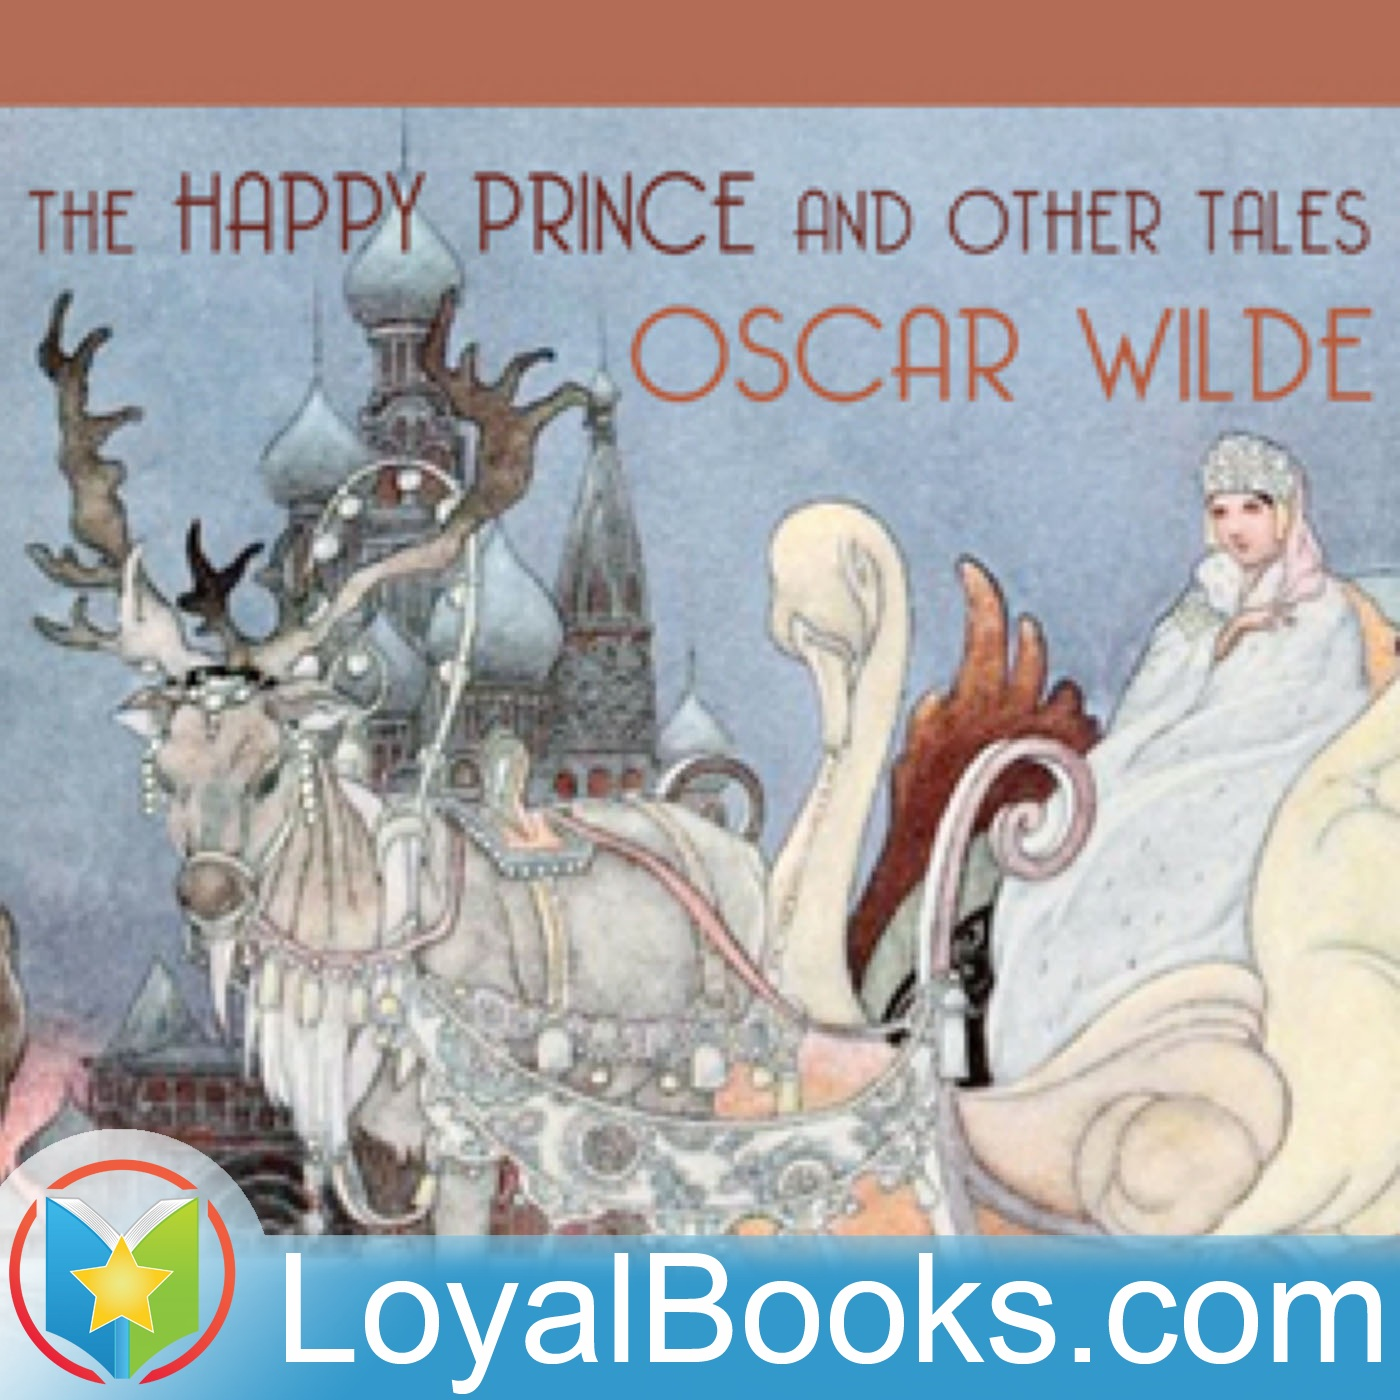 <![CDATA[The Happy Prince and Other Tales by Oscar Wilde]]>